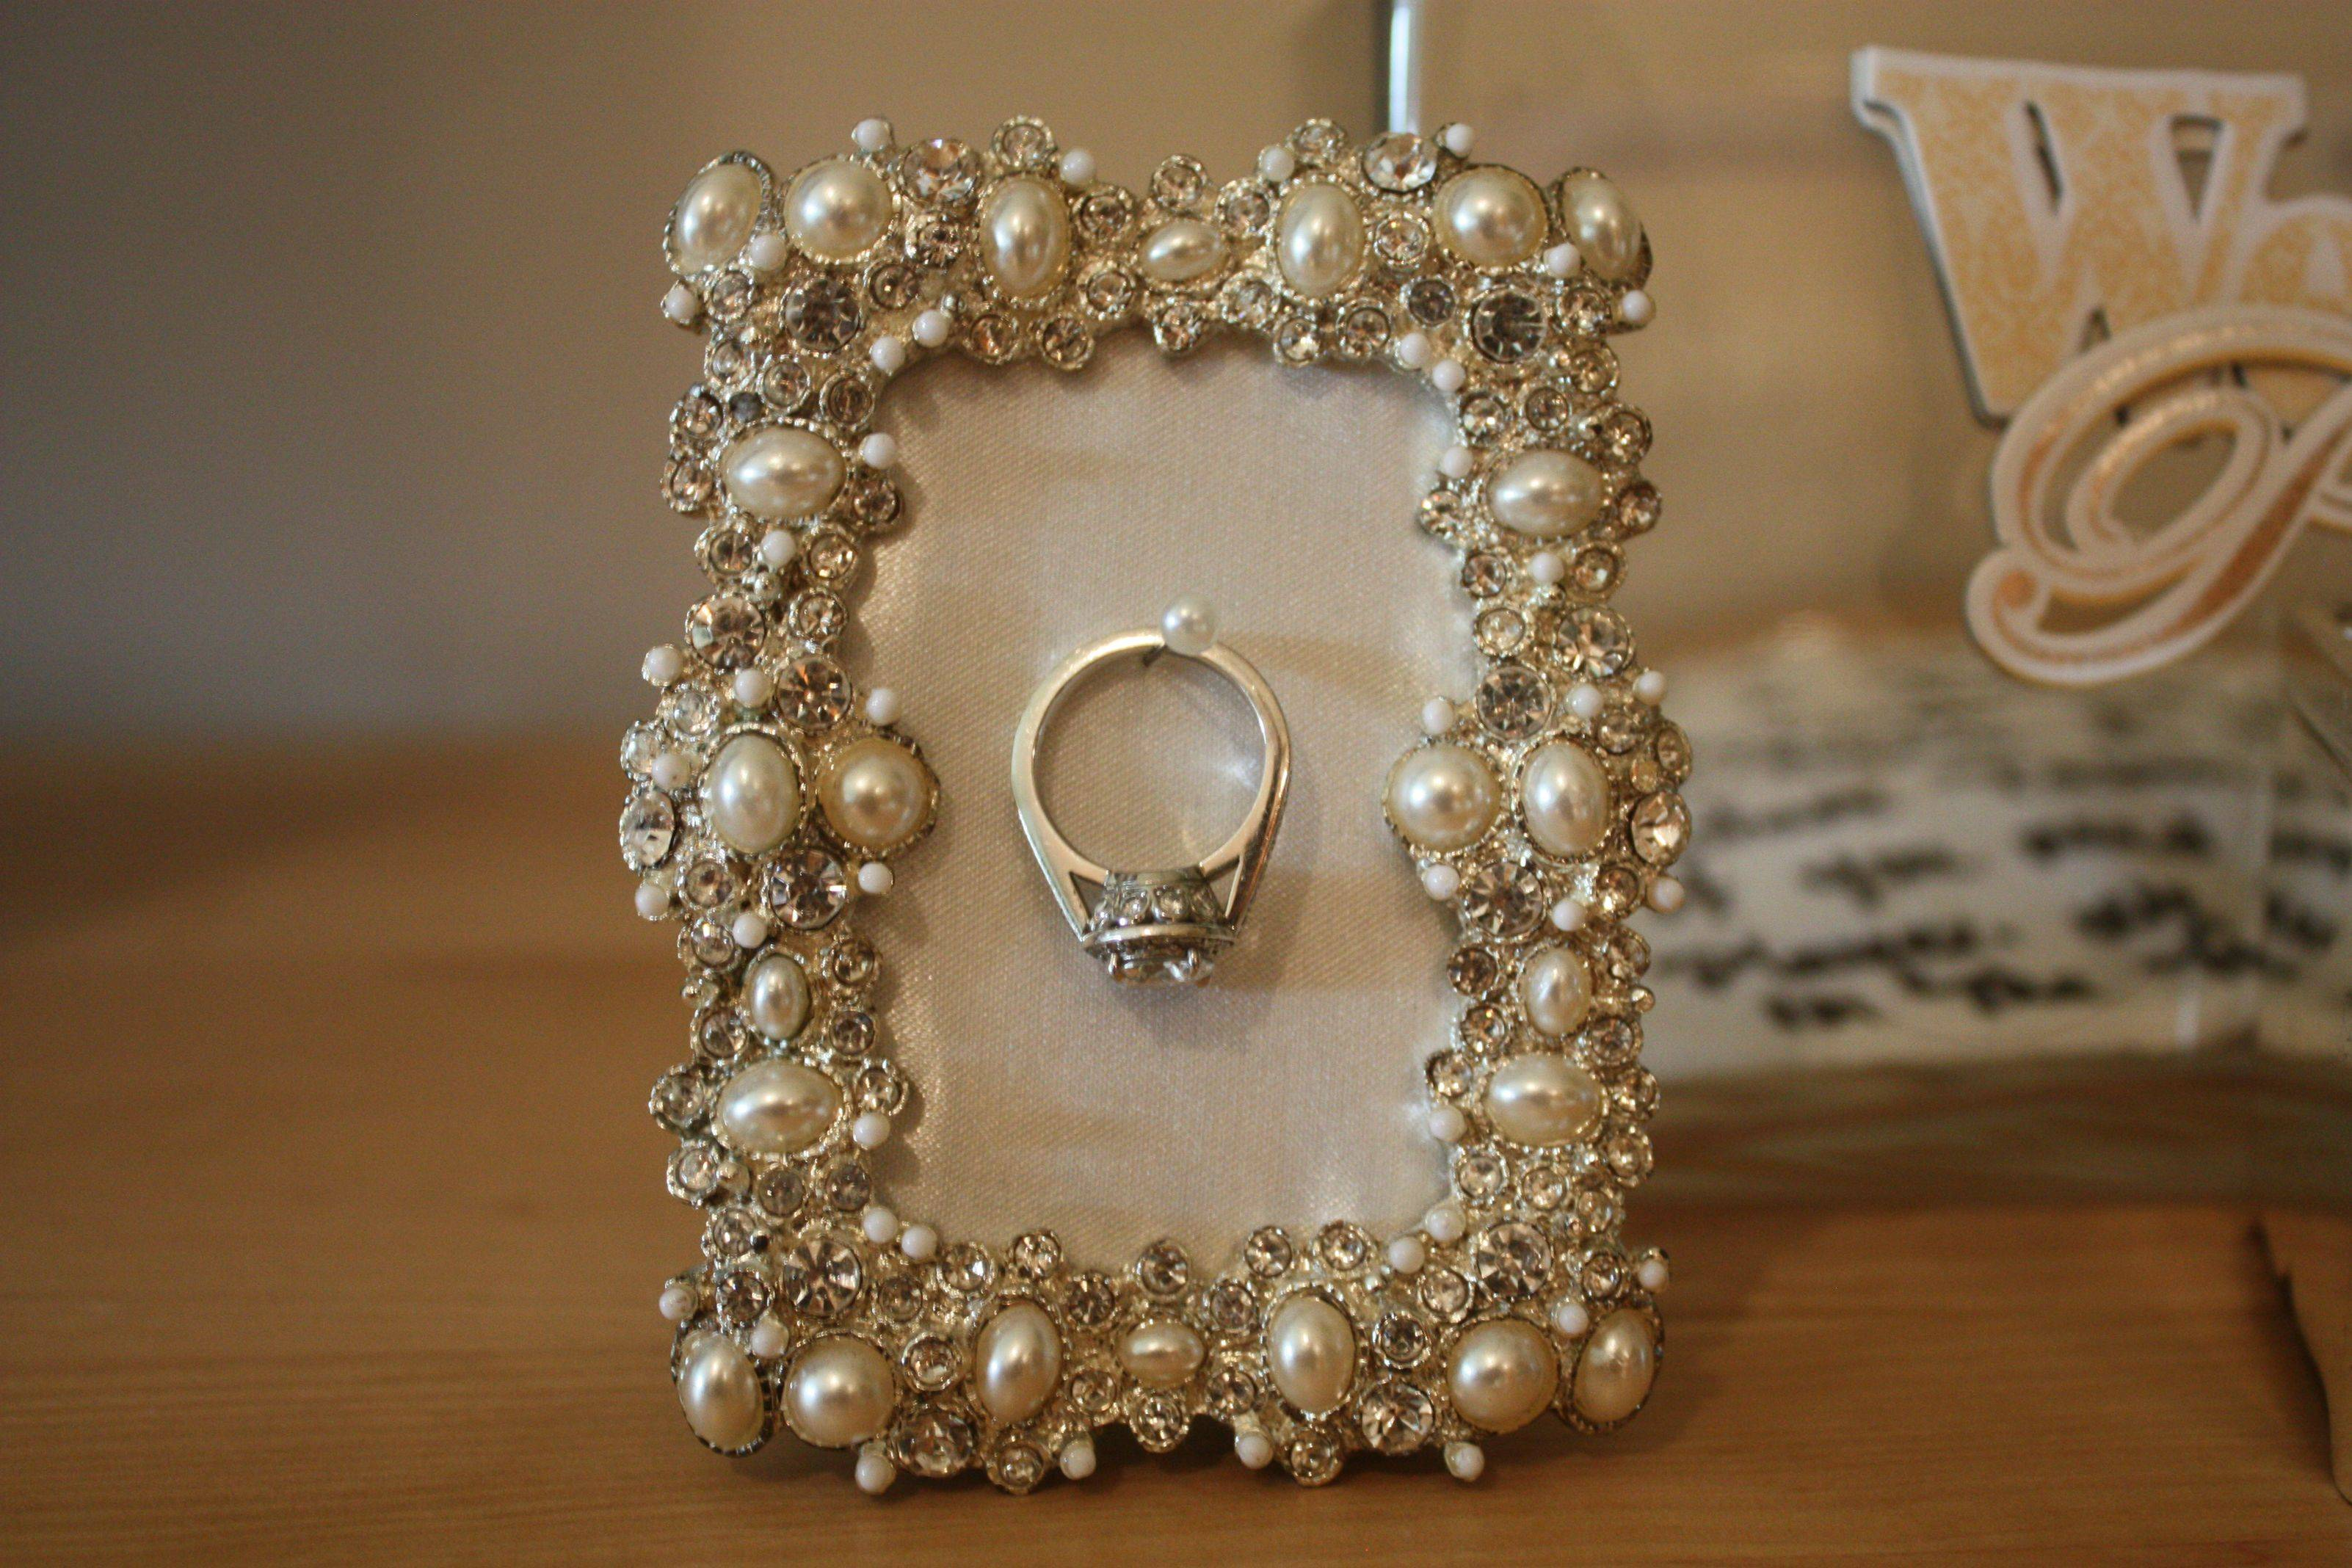 For someone who likes something delicate, a creative jewelry ring holder could be a frame, with pearls on every border and a pin in the middle of it.